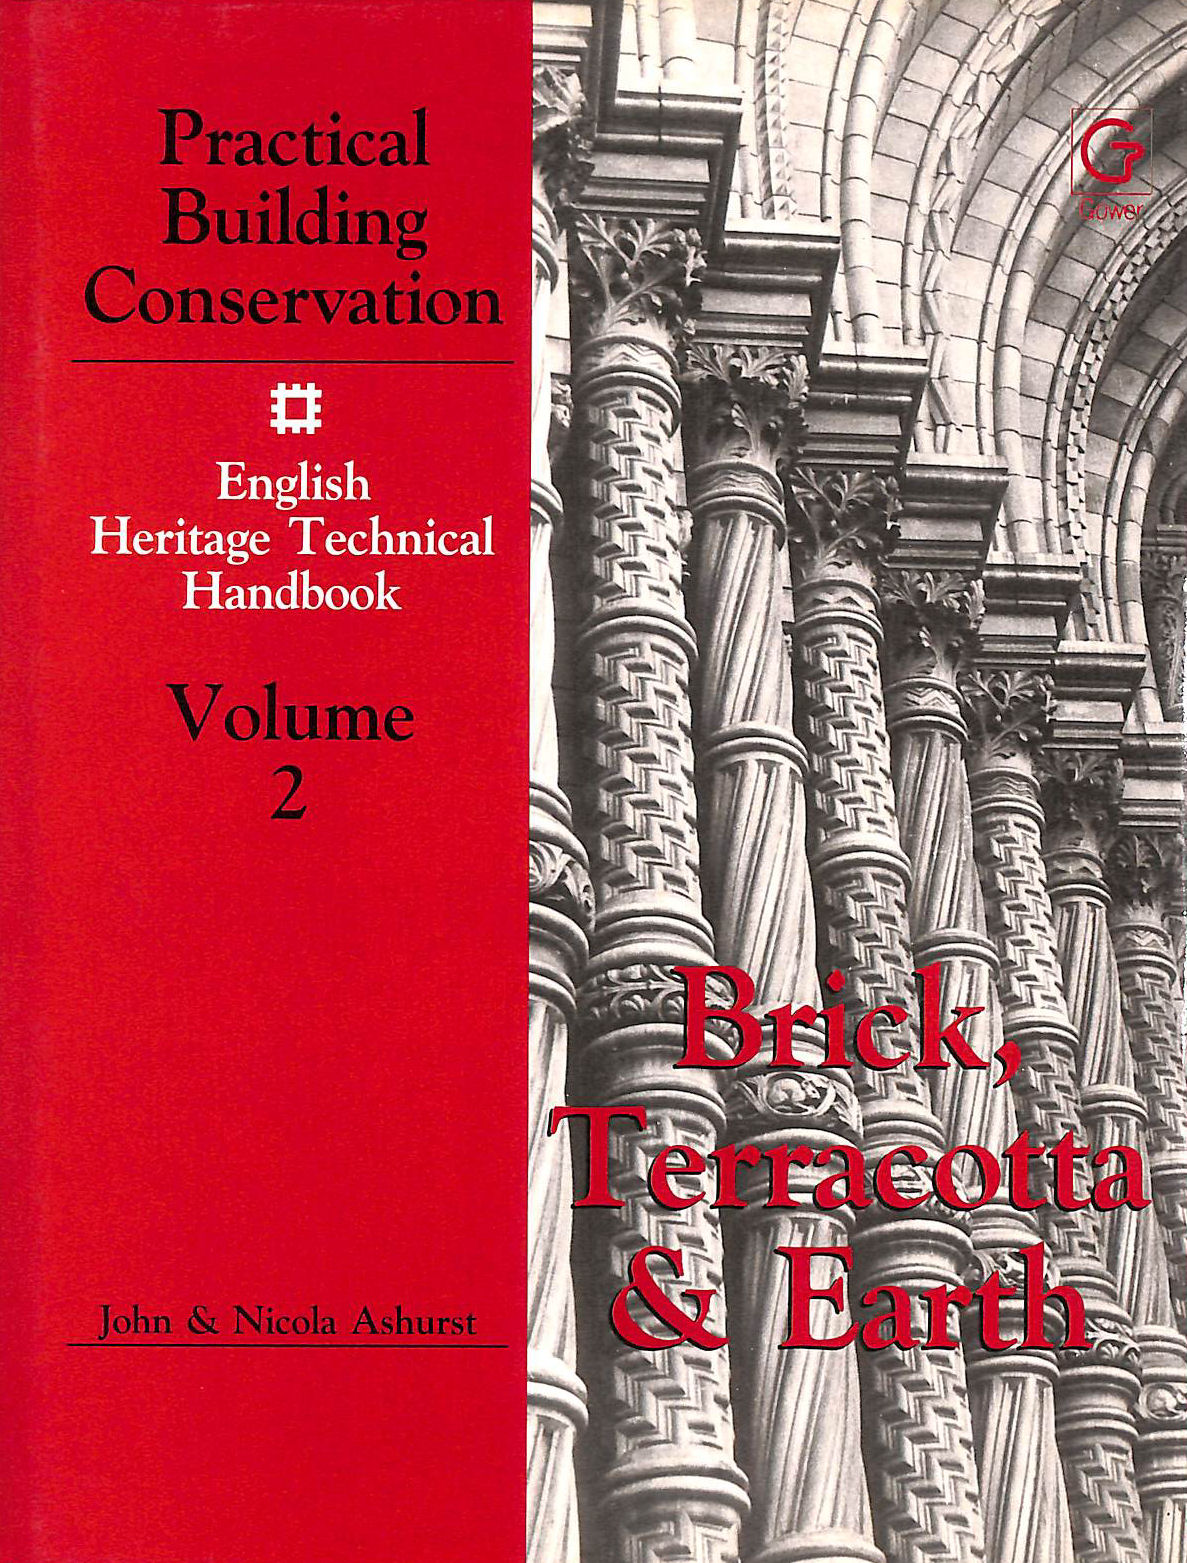 Image for Practical Building Conservation:Practical Building Conservation English Heritage Technical Handbook Volume 2: Brick Terracotta and Earth